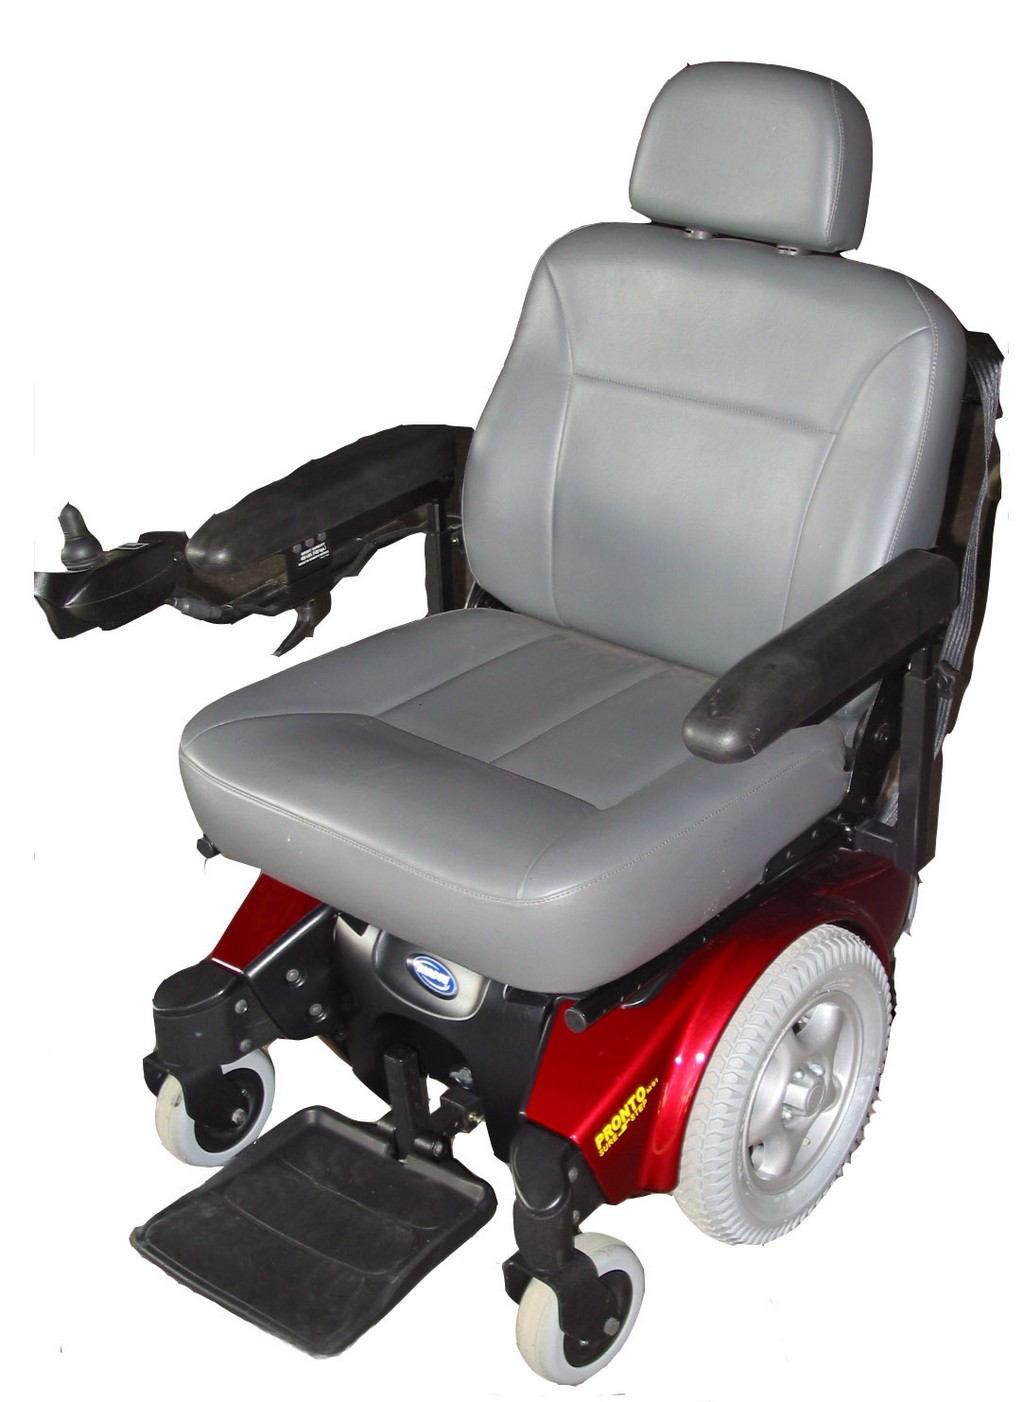 electric wheel chairs, gogo electric wheel chair, electric wheel chair for beach, pride electric wheelchairs